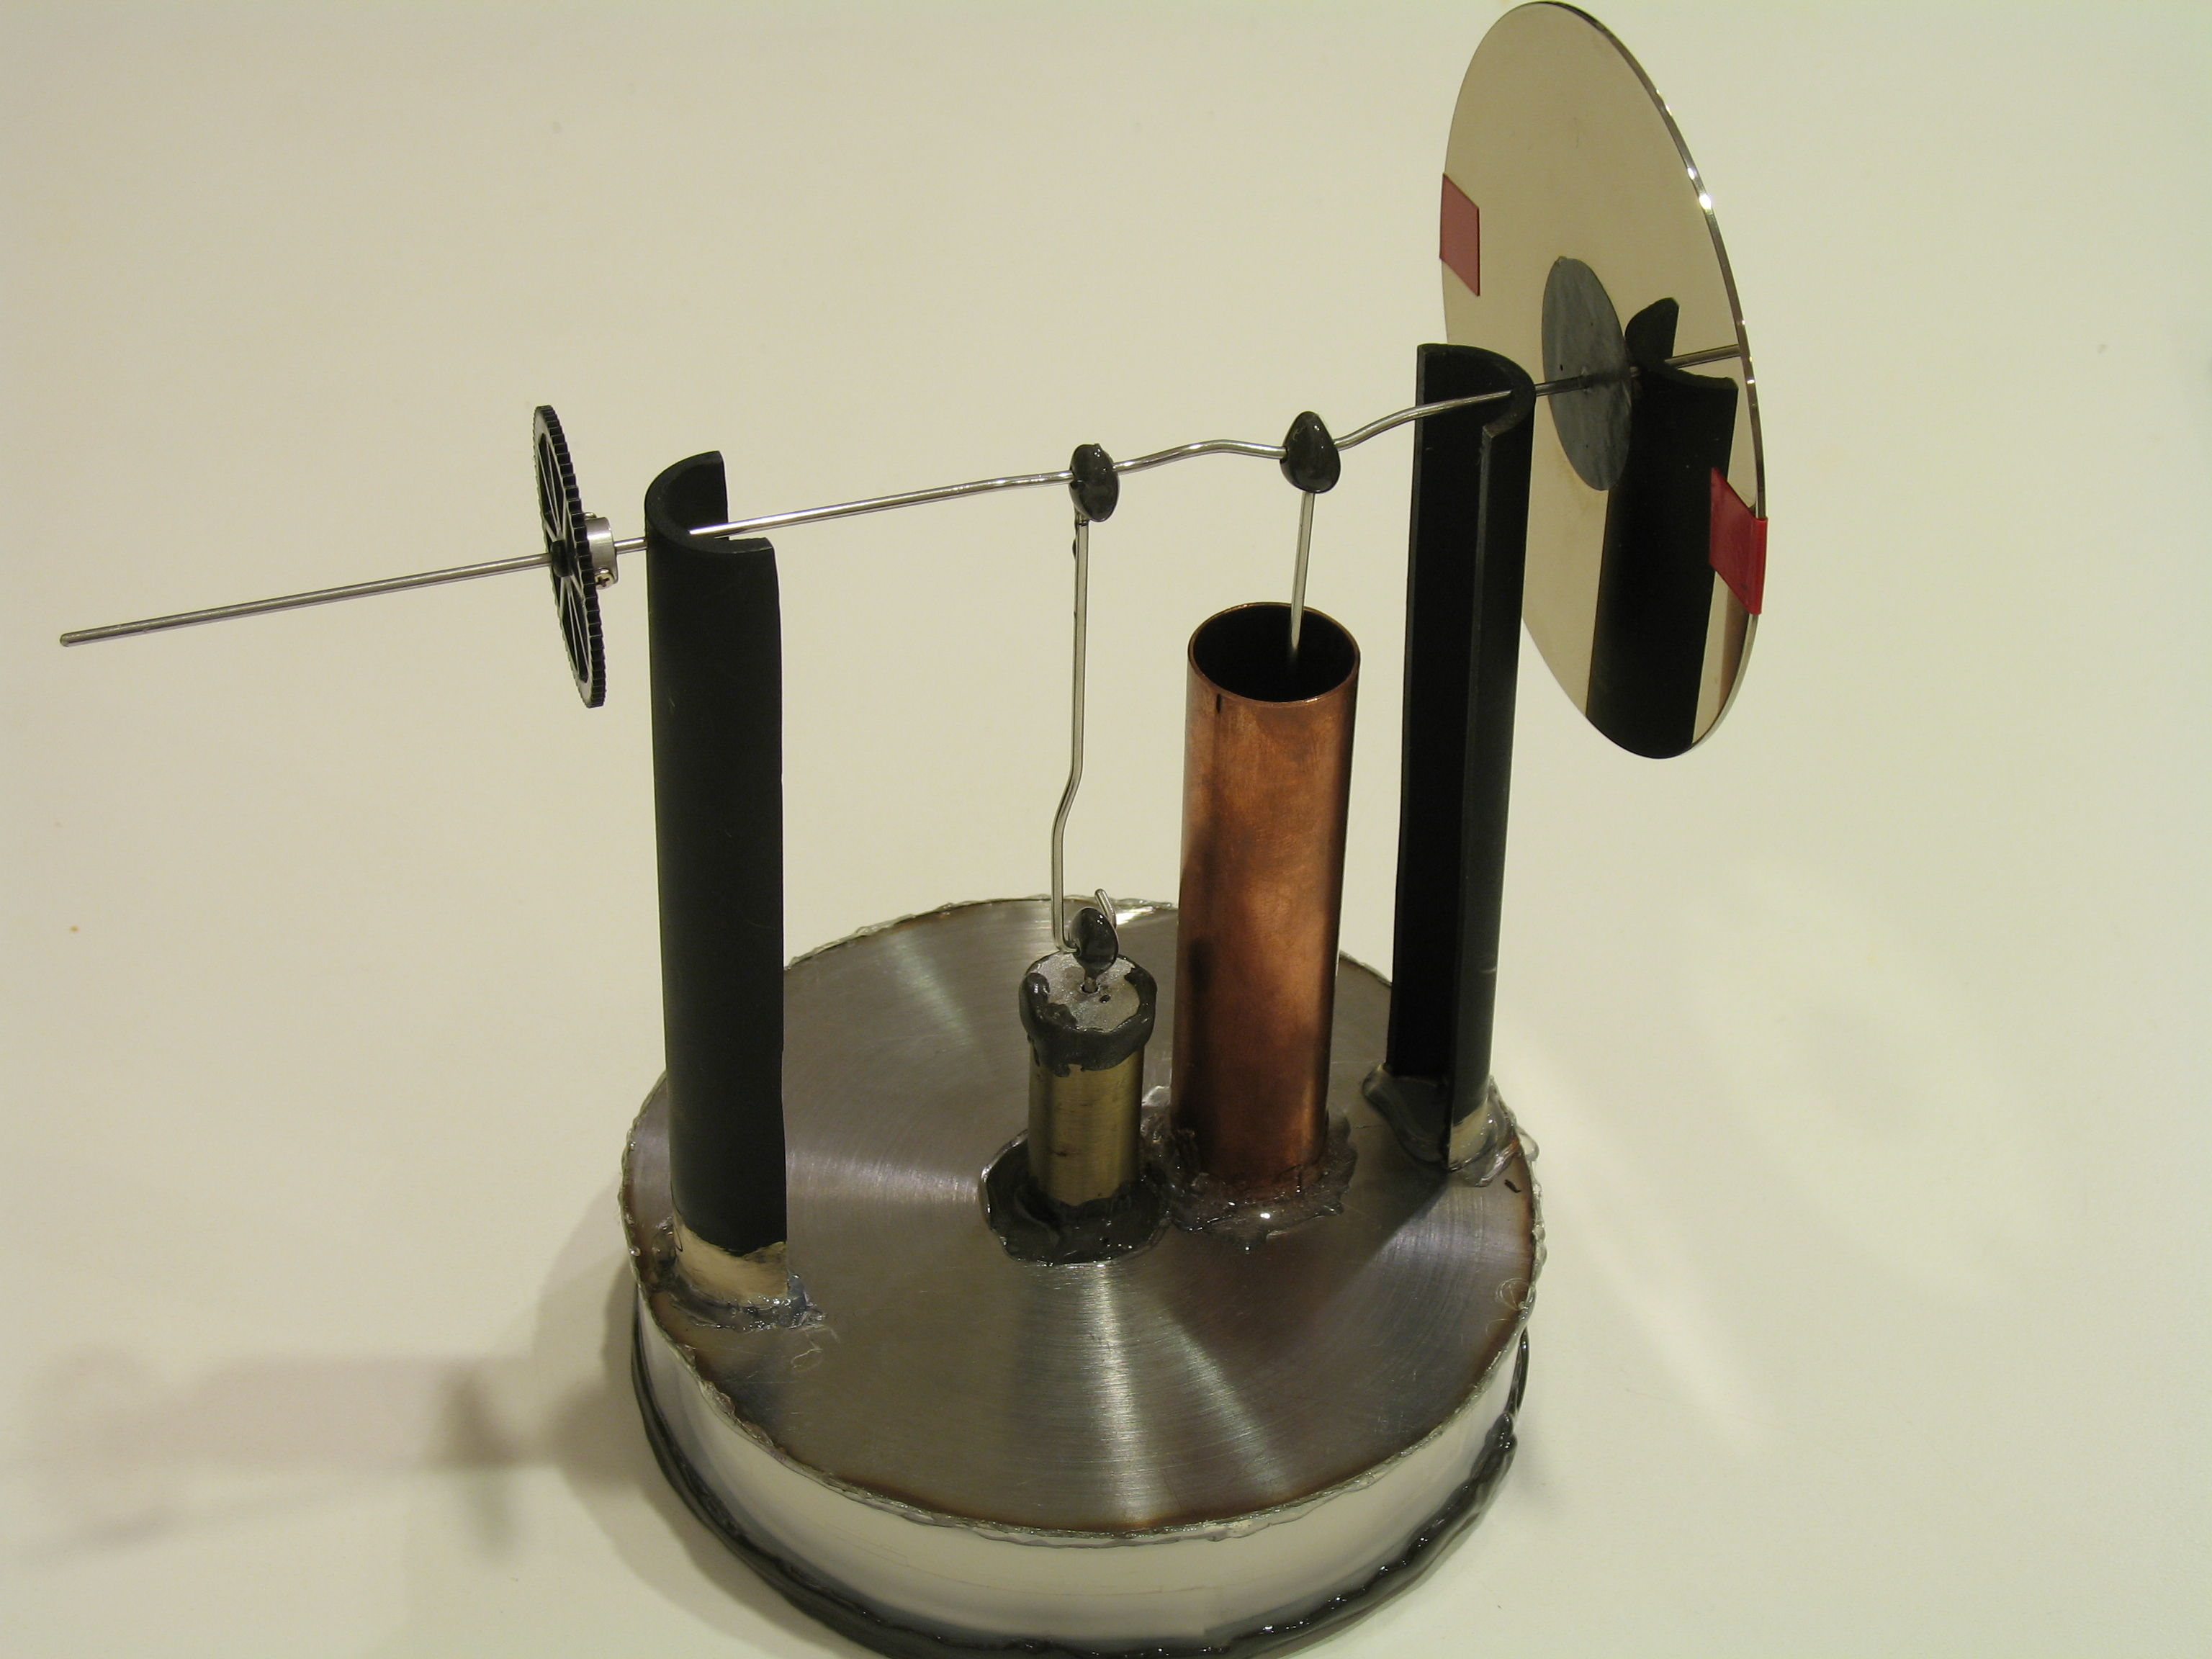 Picture of The Stirling Engine, Absorb Energy From Candles, Coffee, and More!